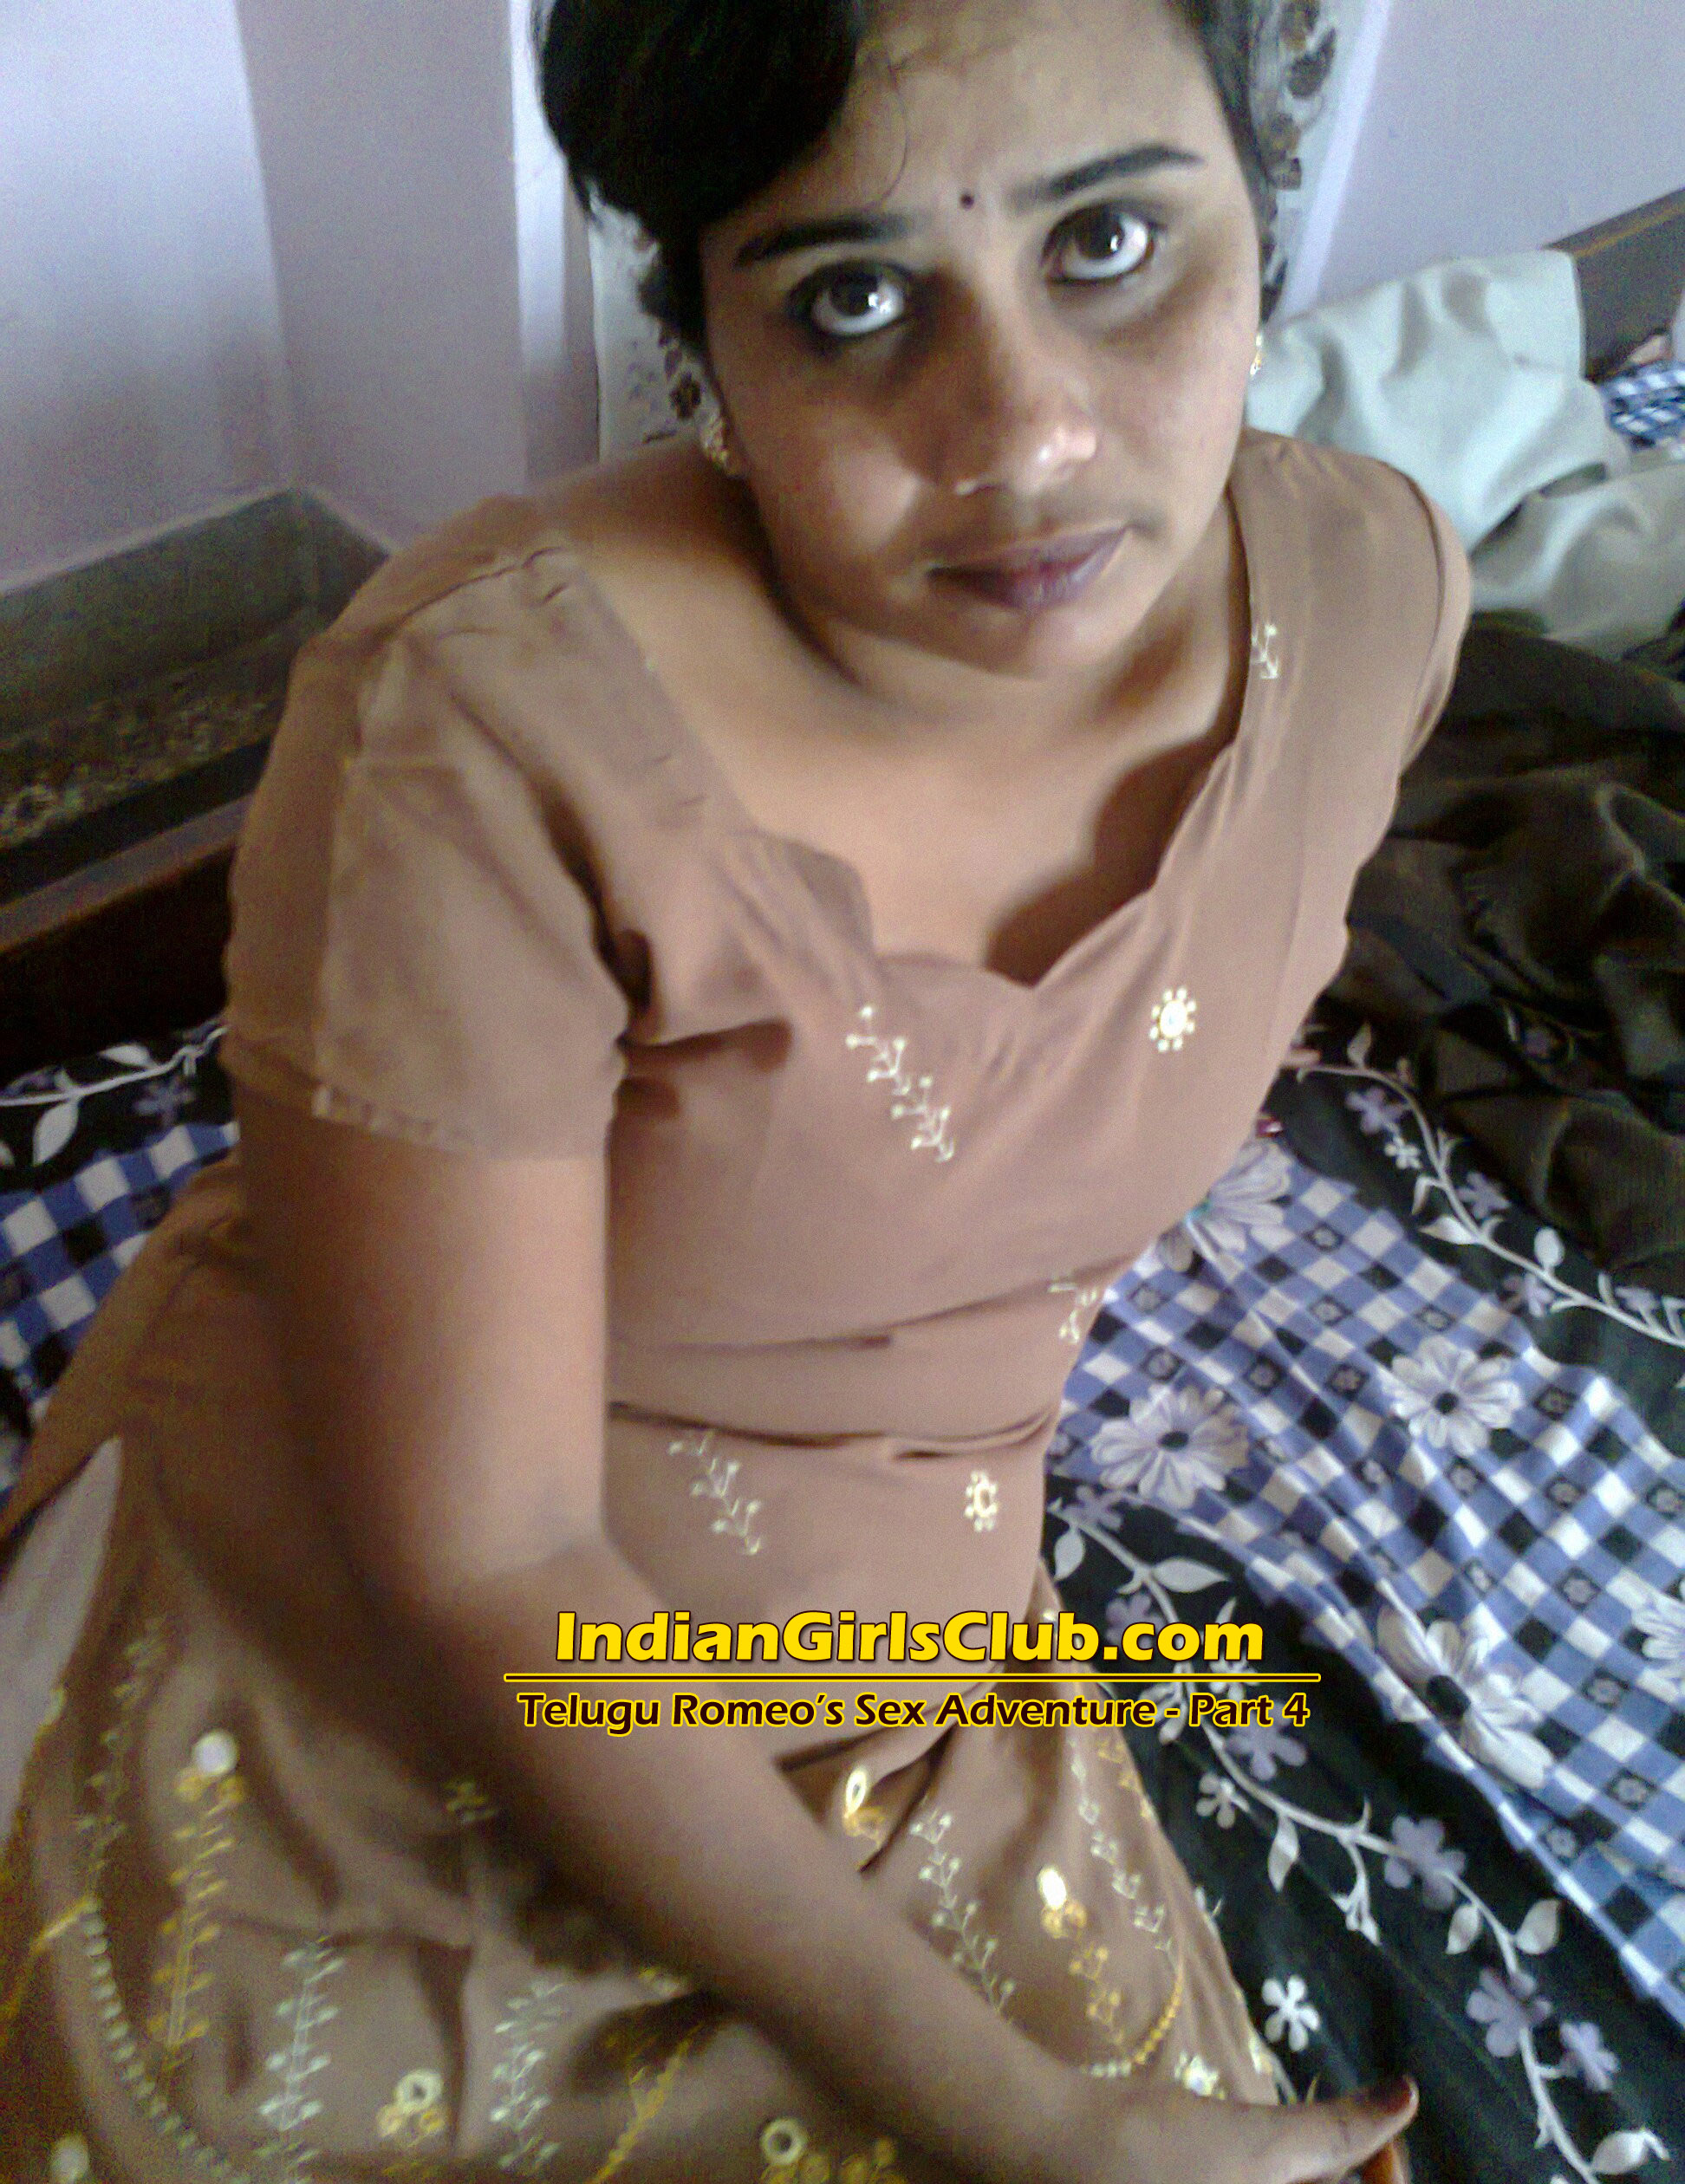 Aunty photos telugu indian sex due time answer